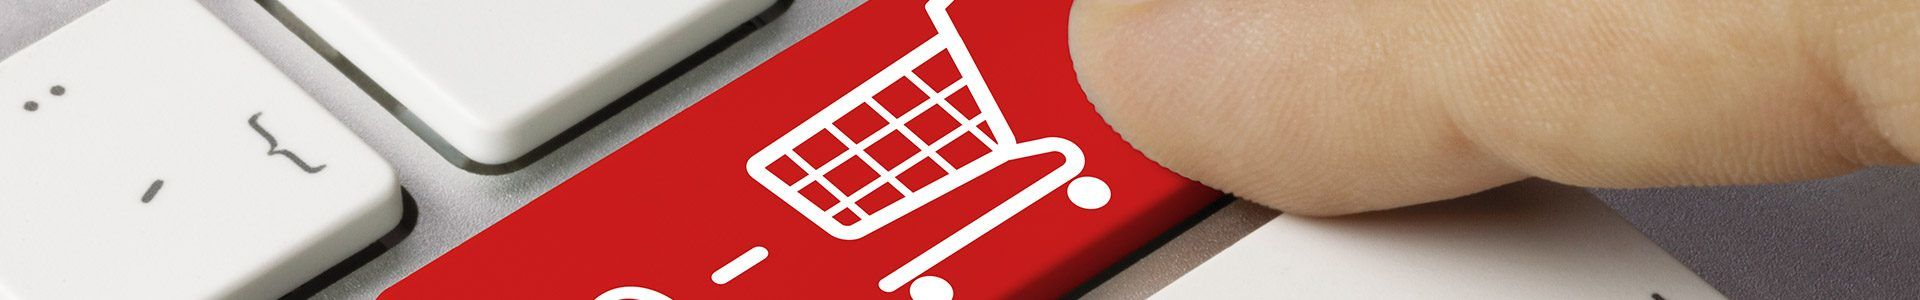 ecommerce grootte plus tips